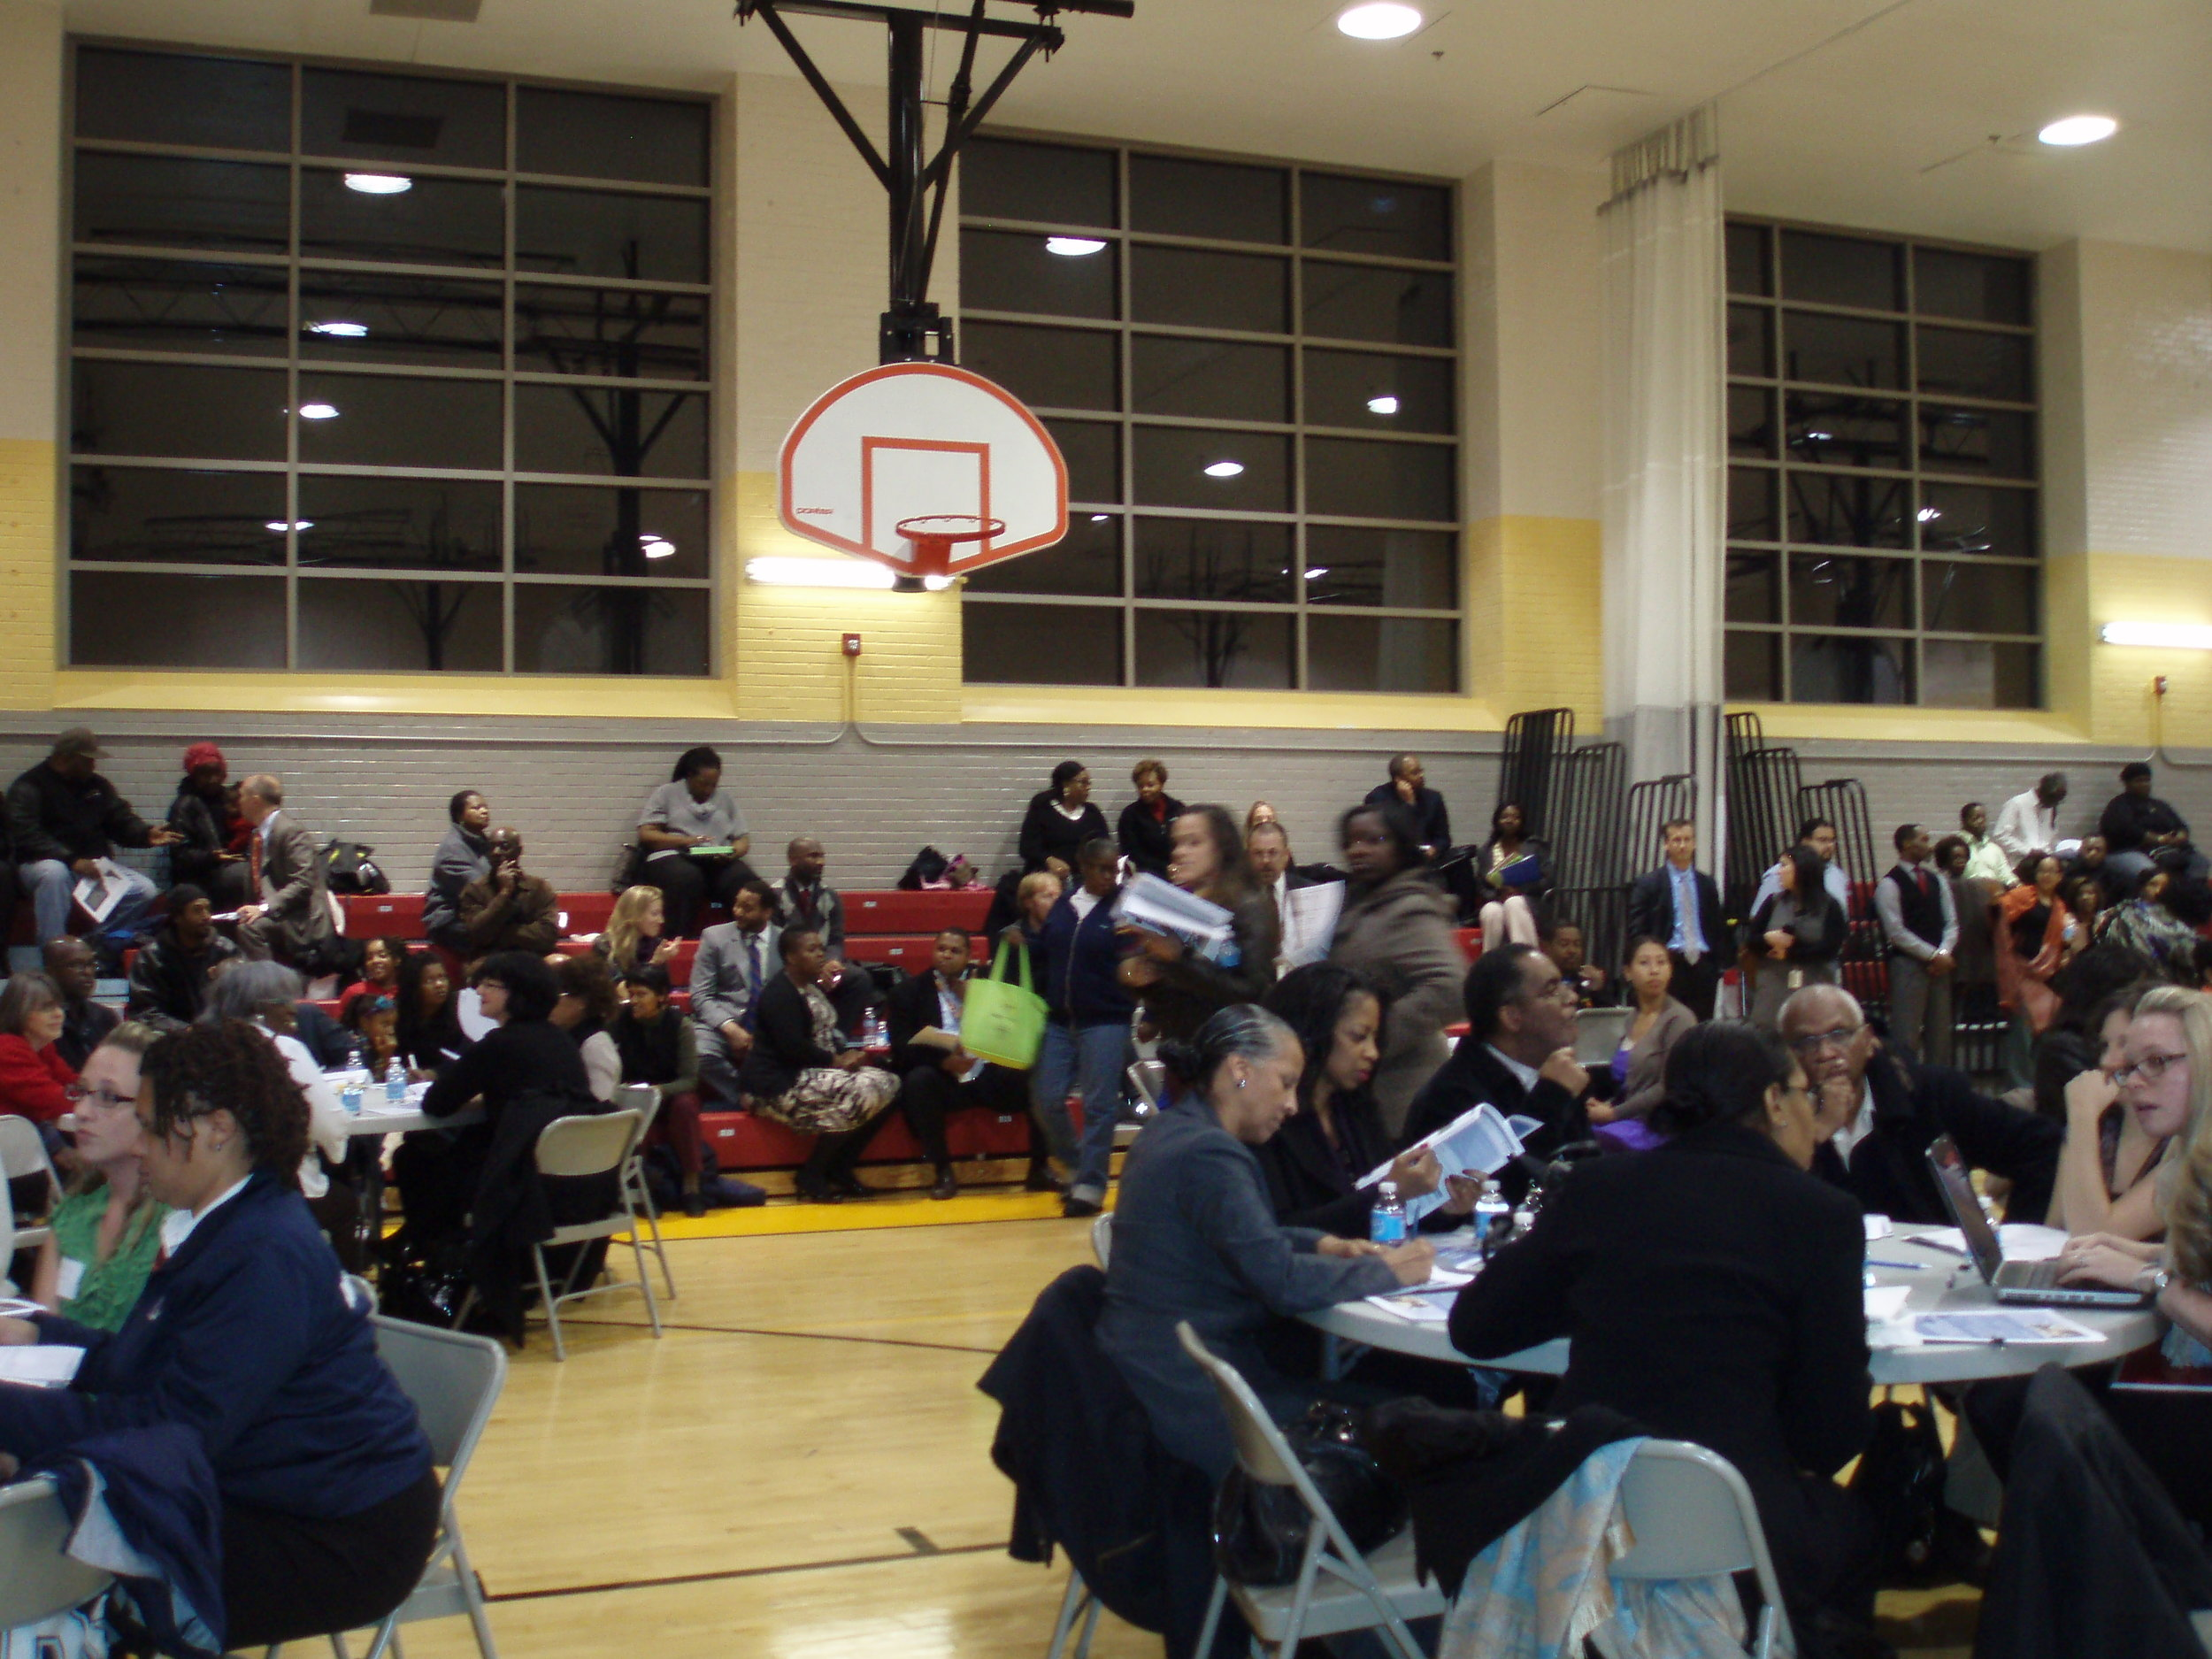 DCPS Ward 7 Community Mtg. at Sousa, 11-28-12P1010006 (4).JPG